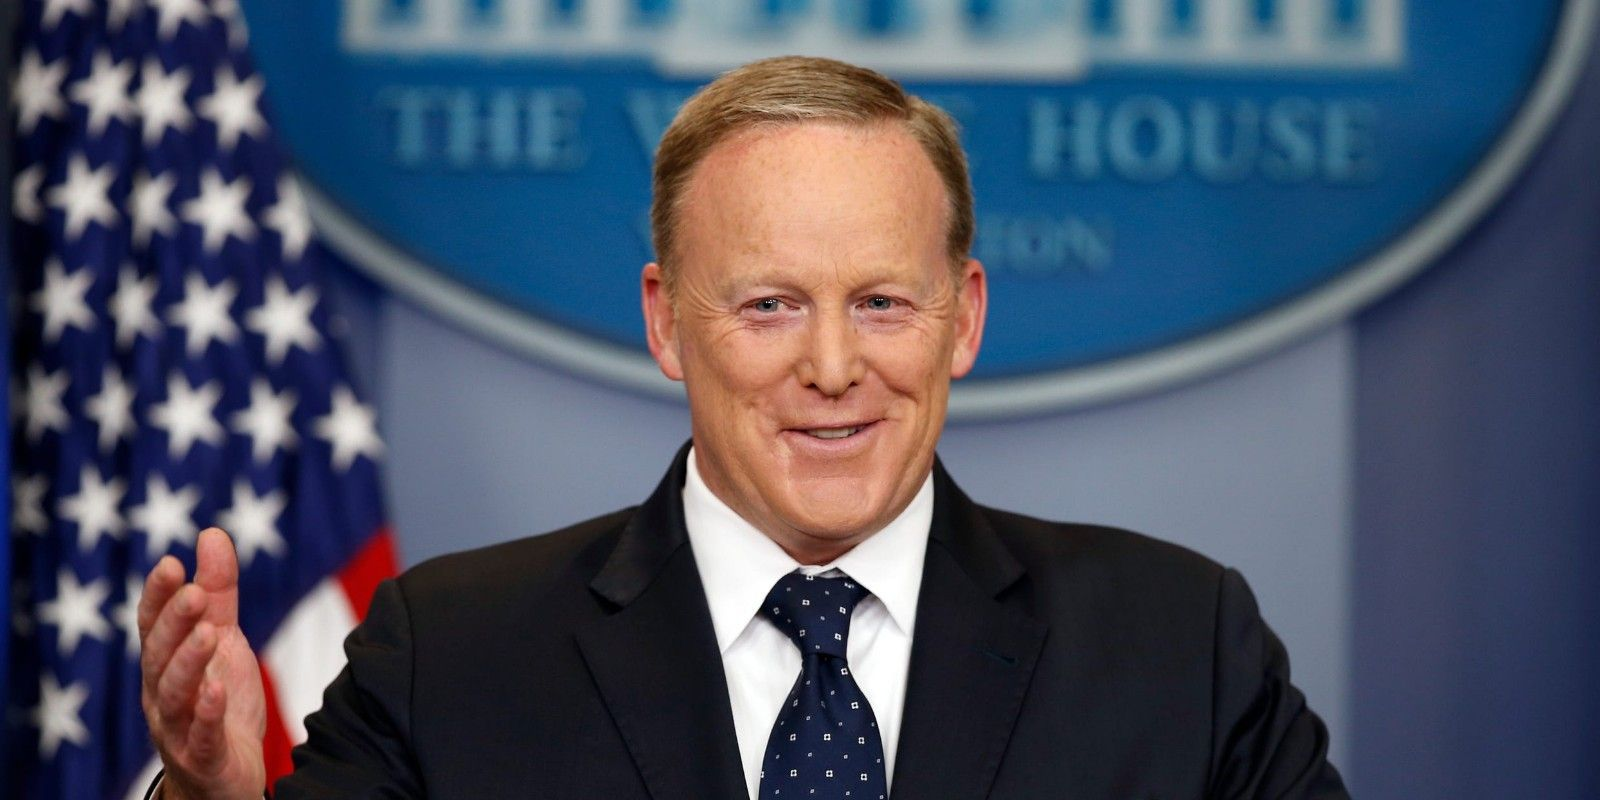 Dancing With the Stars Host's Concerns About Casting Sean Spicer